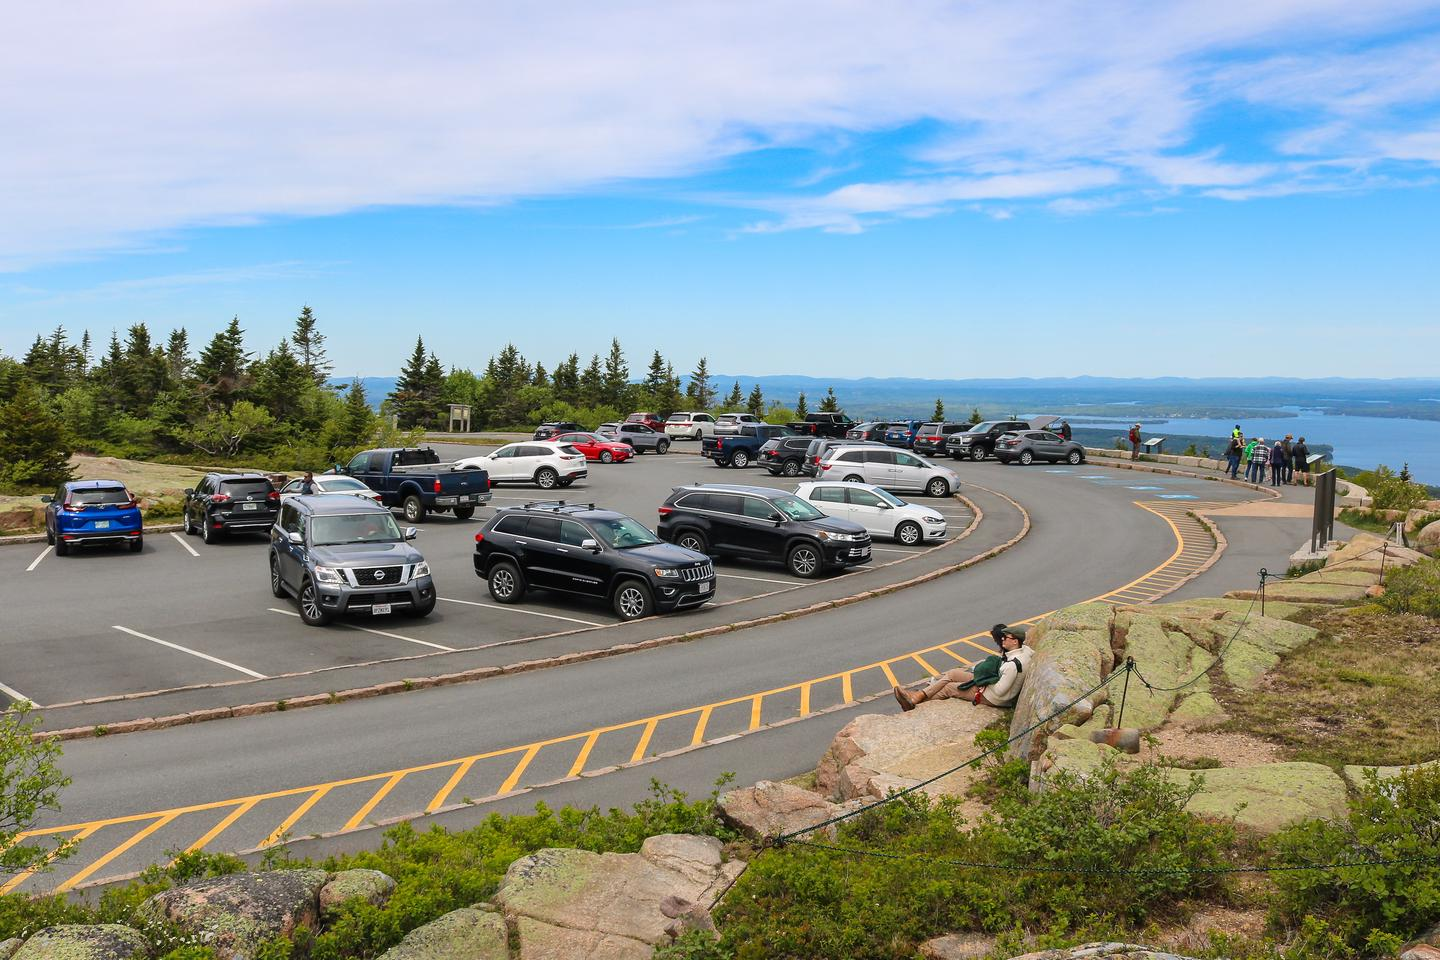 About 25 cars parked in a crescent shaped lot on top of a mountain with a distant view of the ocean and mountains in the background.Parking at the Cadillac Summit.